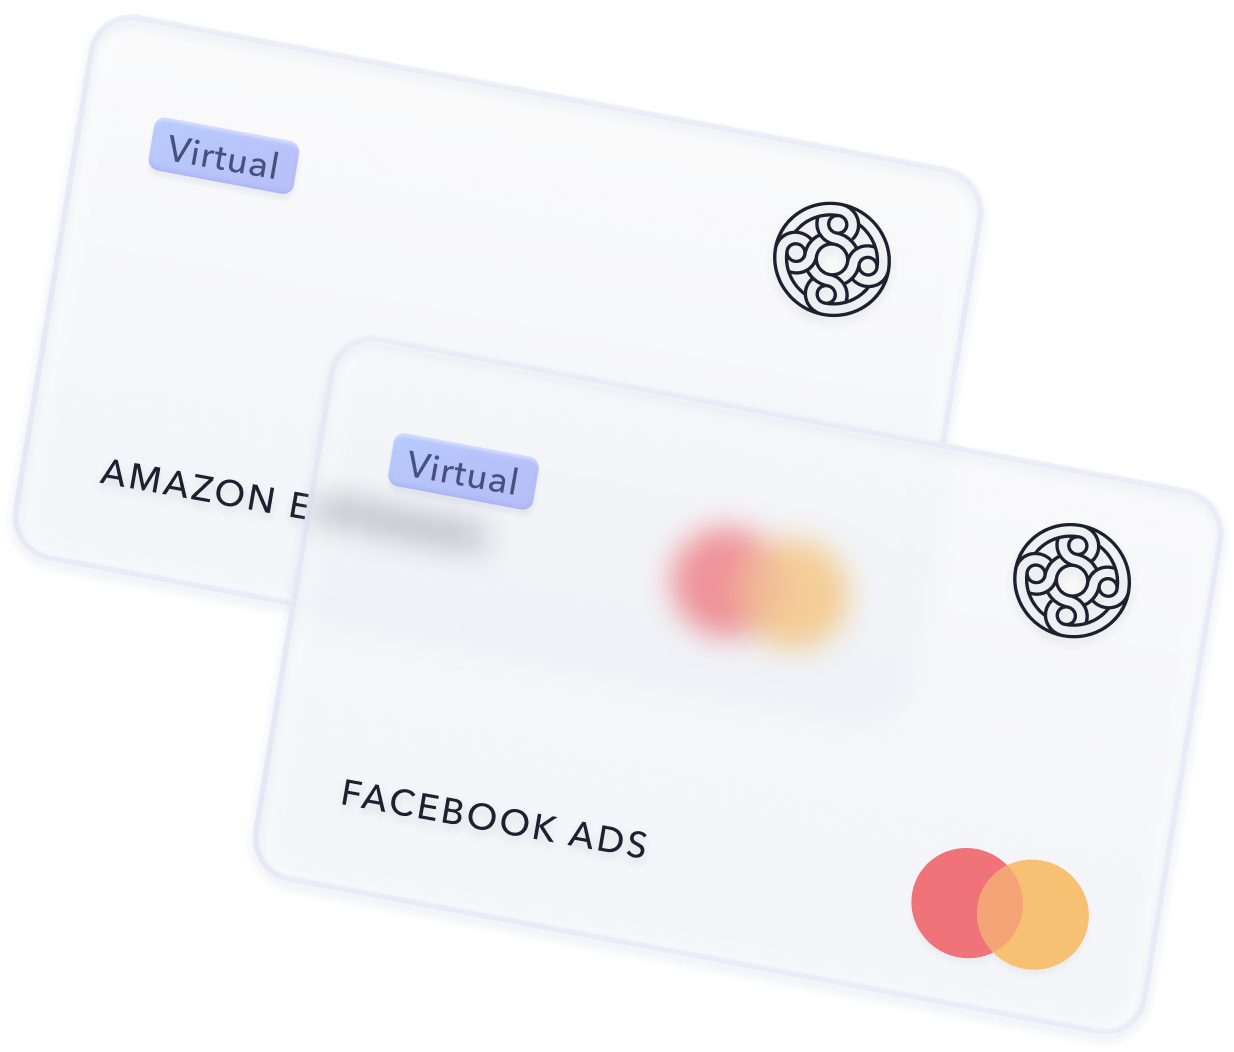 virtual credit cards from mercury lined up on a white backdrop